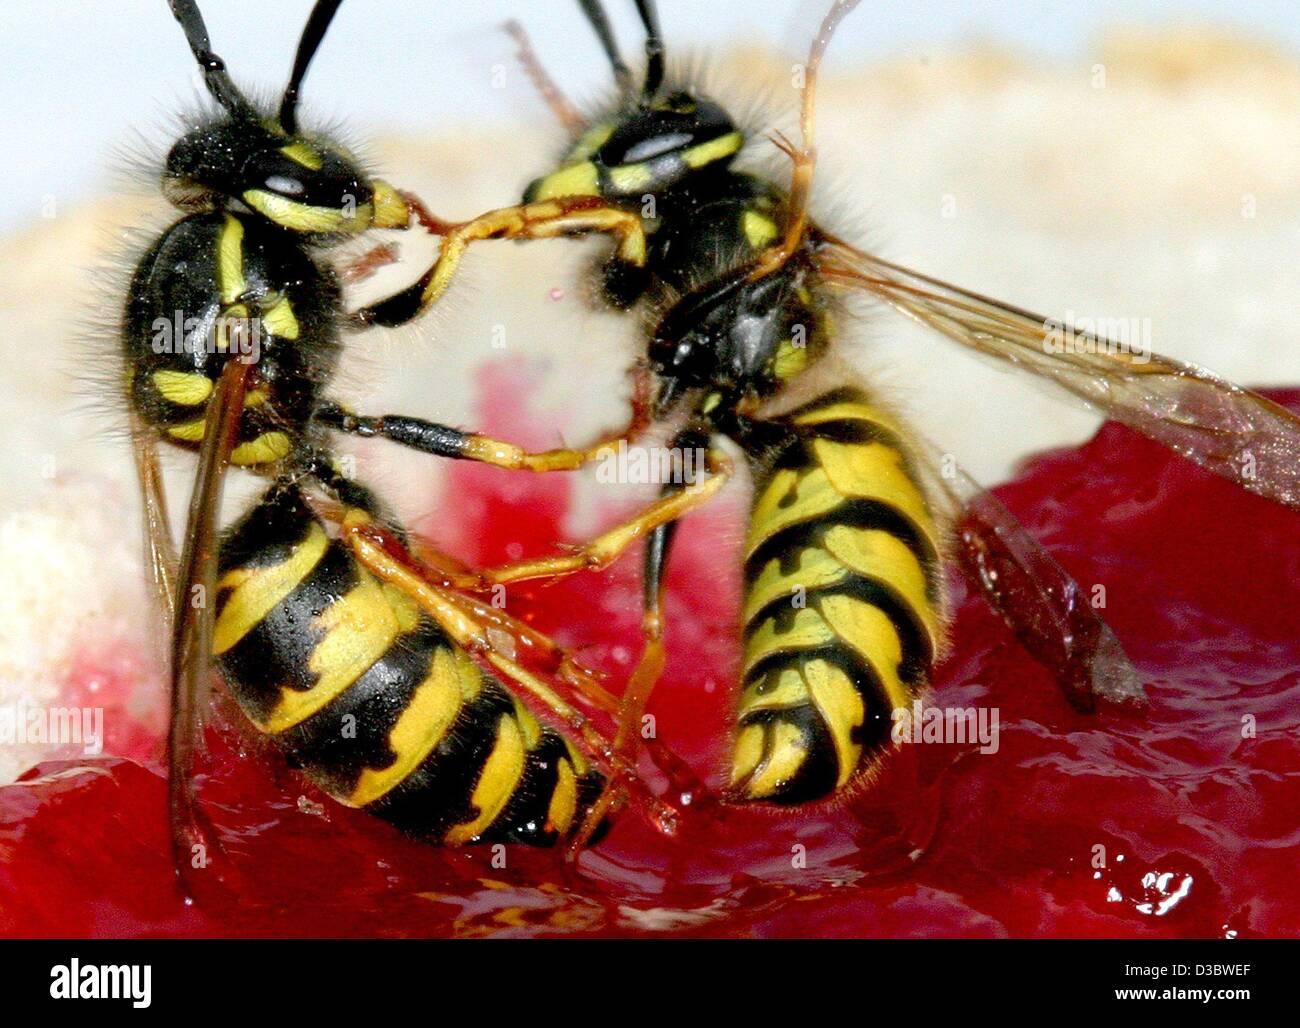 (dpa) - A particular nuisance at the end of the summer for many: Wasps fight for the best spot on a jam bread, in - Stock Image